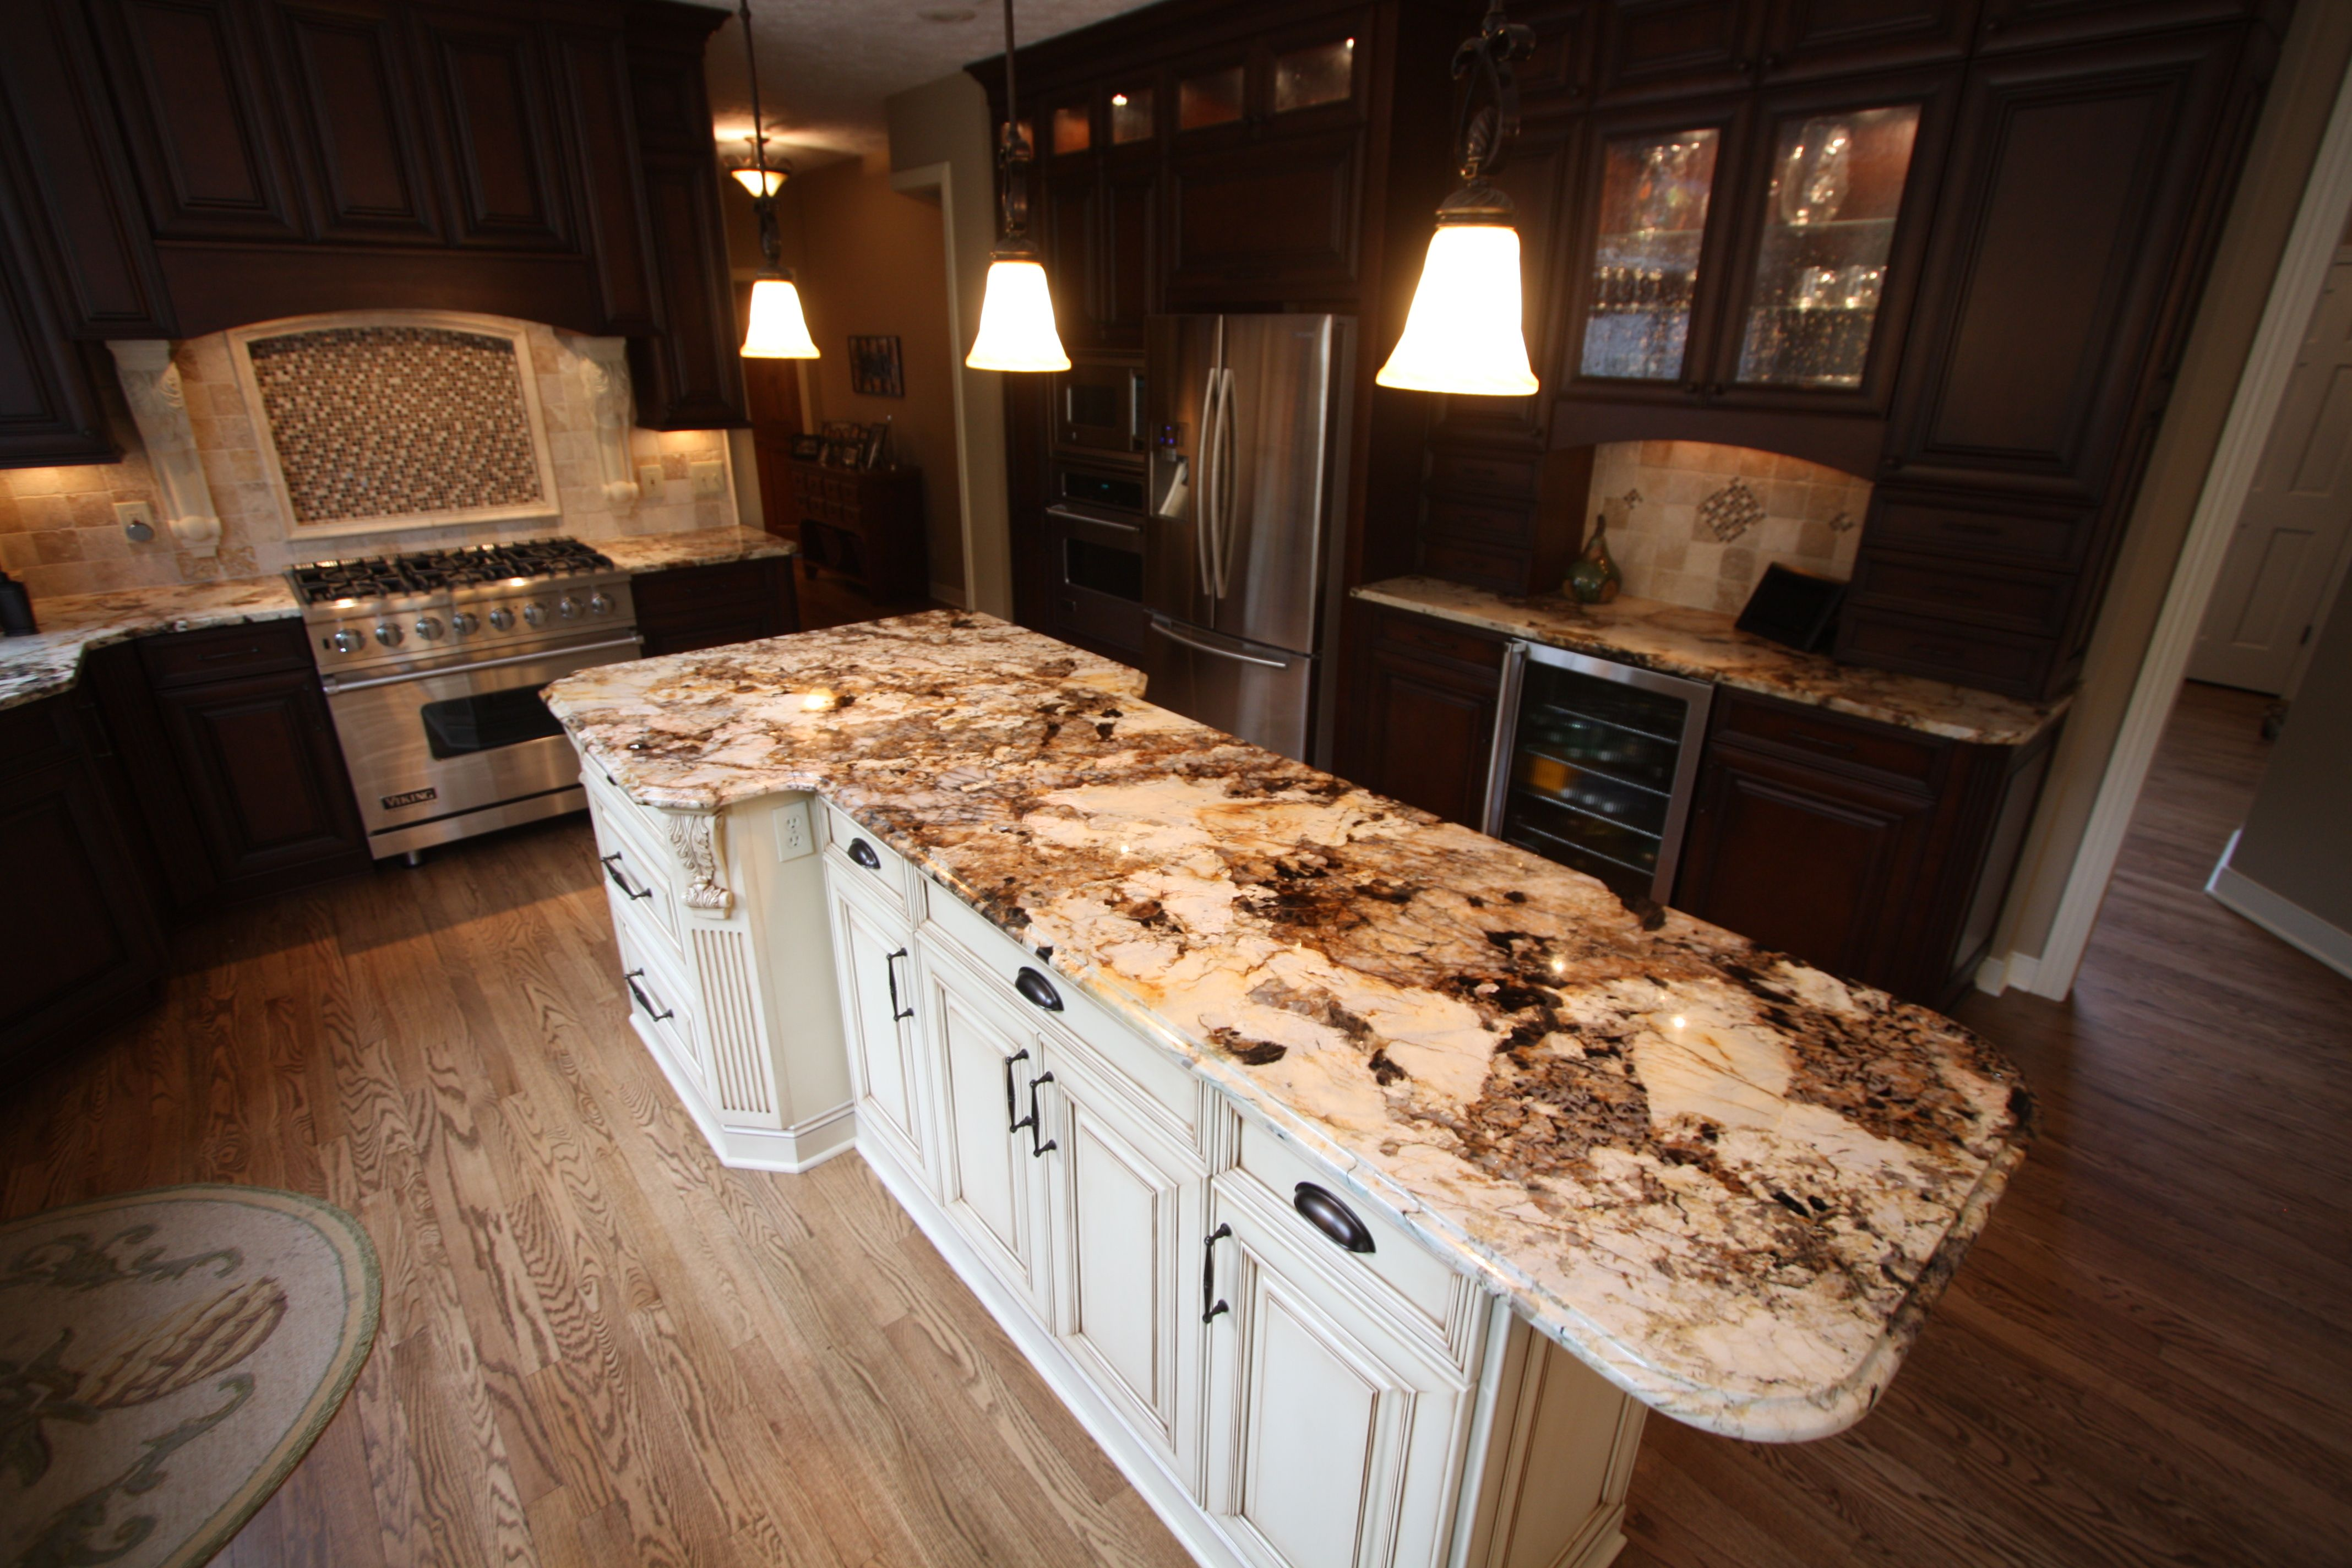 Unusual Granite Countertops : Crystal white island bench check out the extra bit of